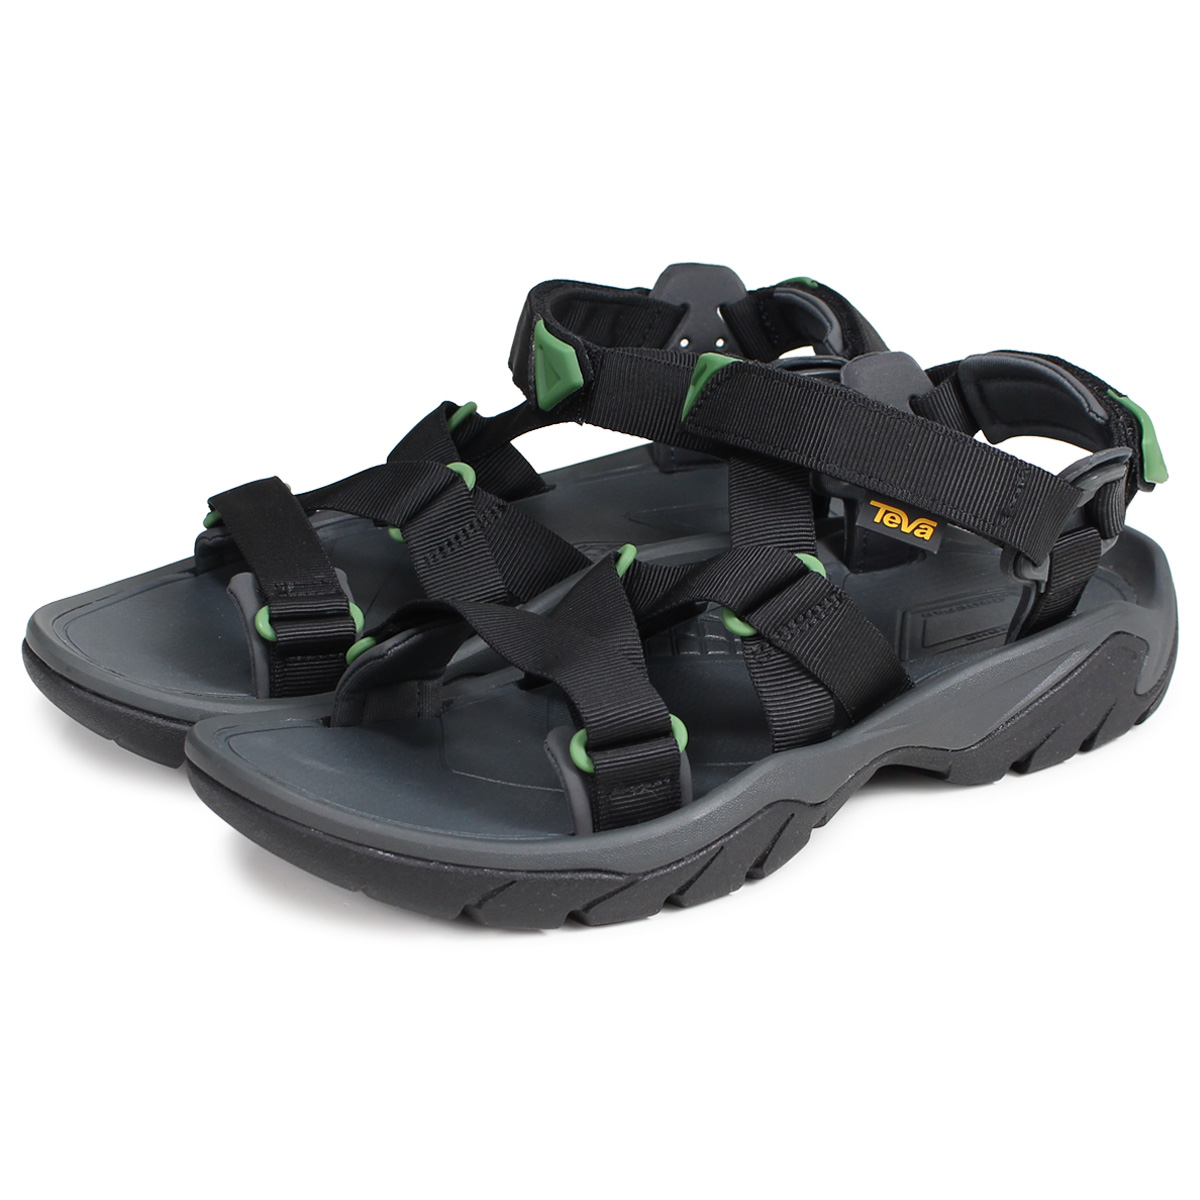 0882d228f Teva TERRA FI 5 SPORT Teva sandals terra men black gray black 1099441  load  planned Shinnyu load in reservation product 3 13 containing   193